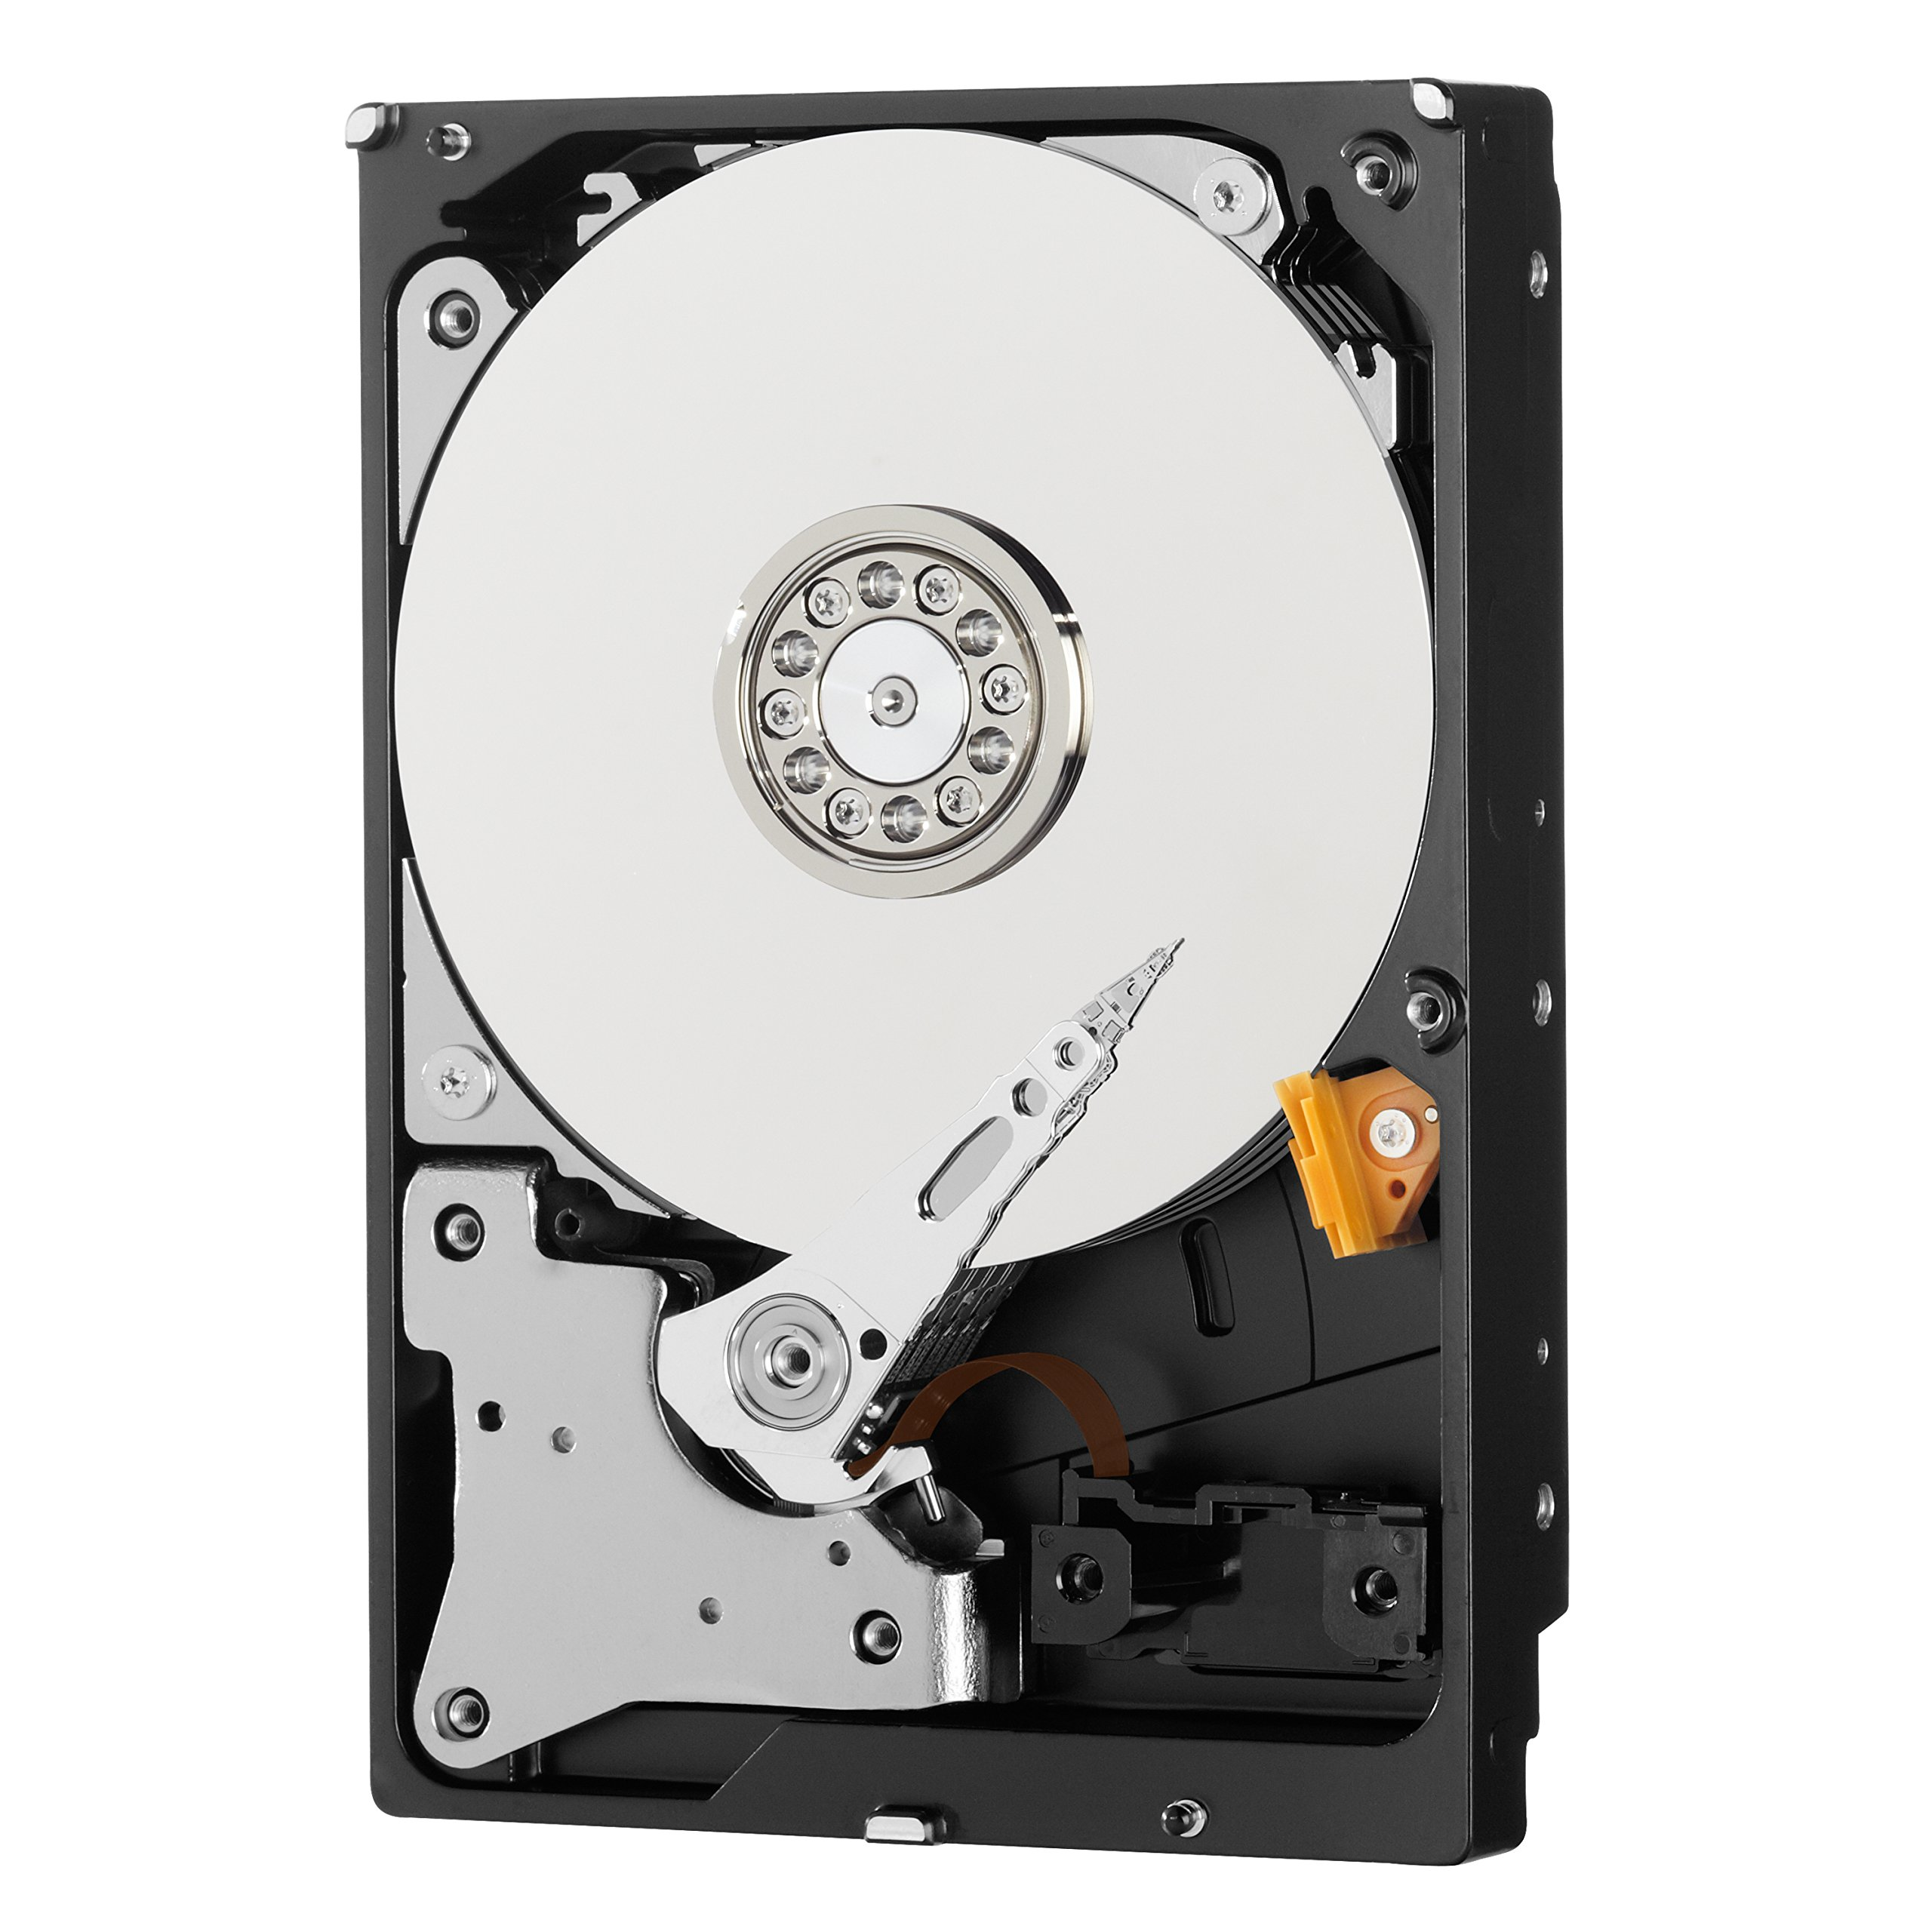 WD Red 6TB NAS Internal Hard Drive - 5400 RPM Class, SATA 6 GB/S, 256MB Cache, 3.5'' - WD60EFAX by Western Digital (Image #5)